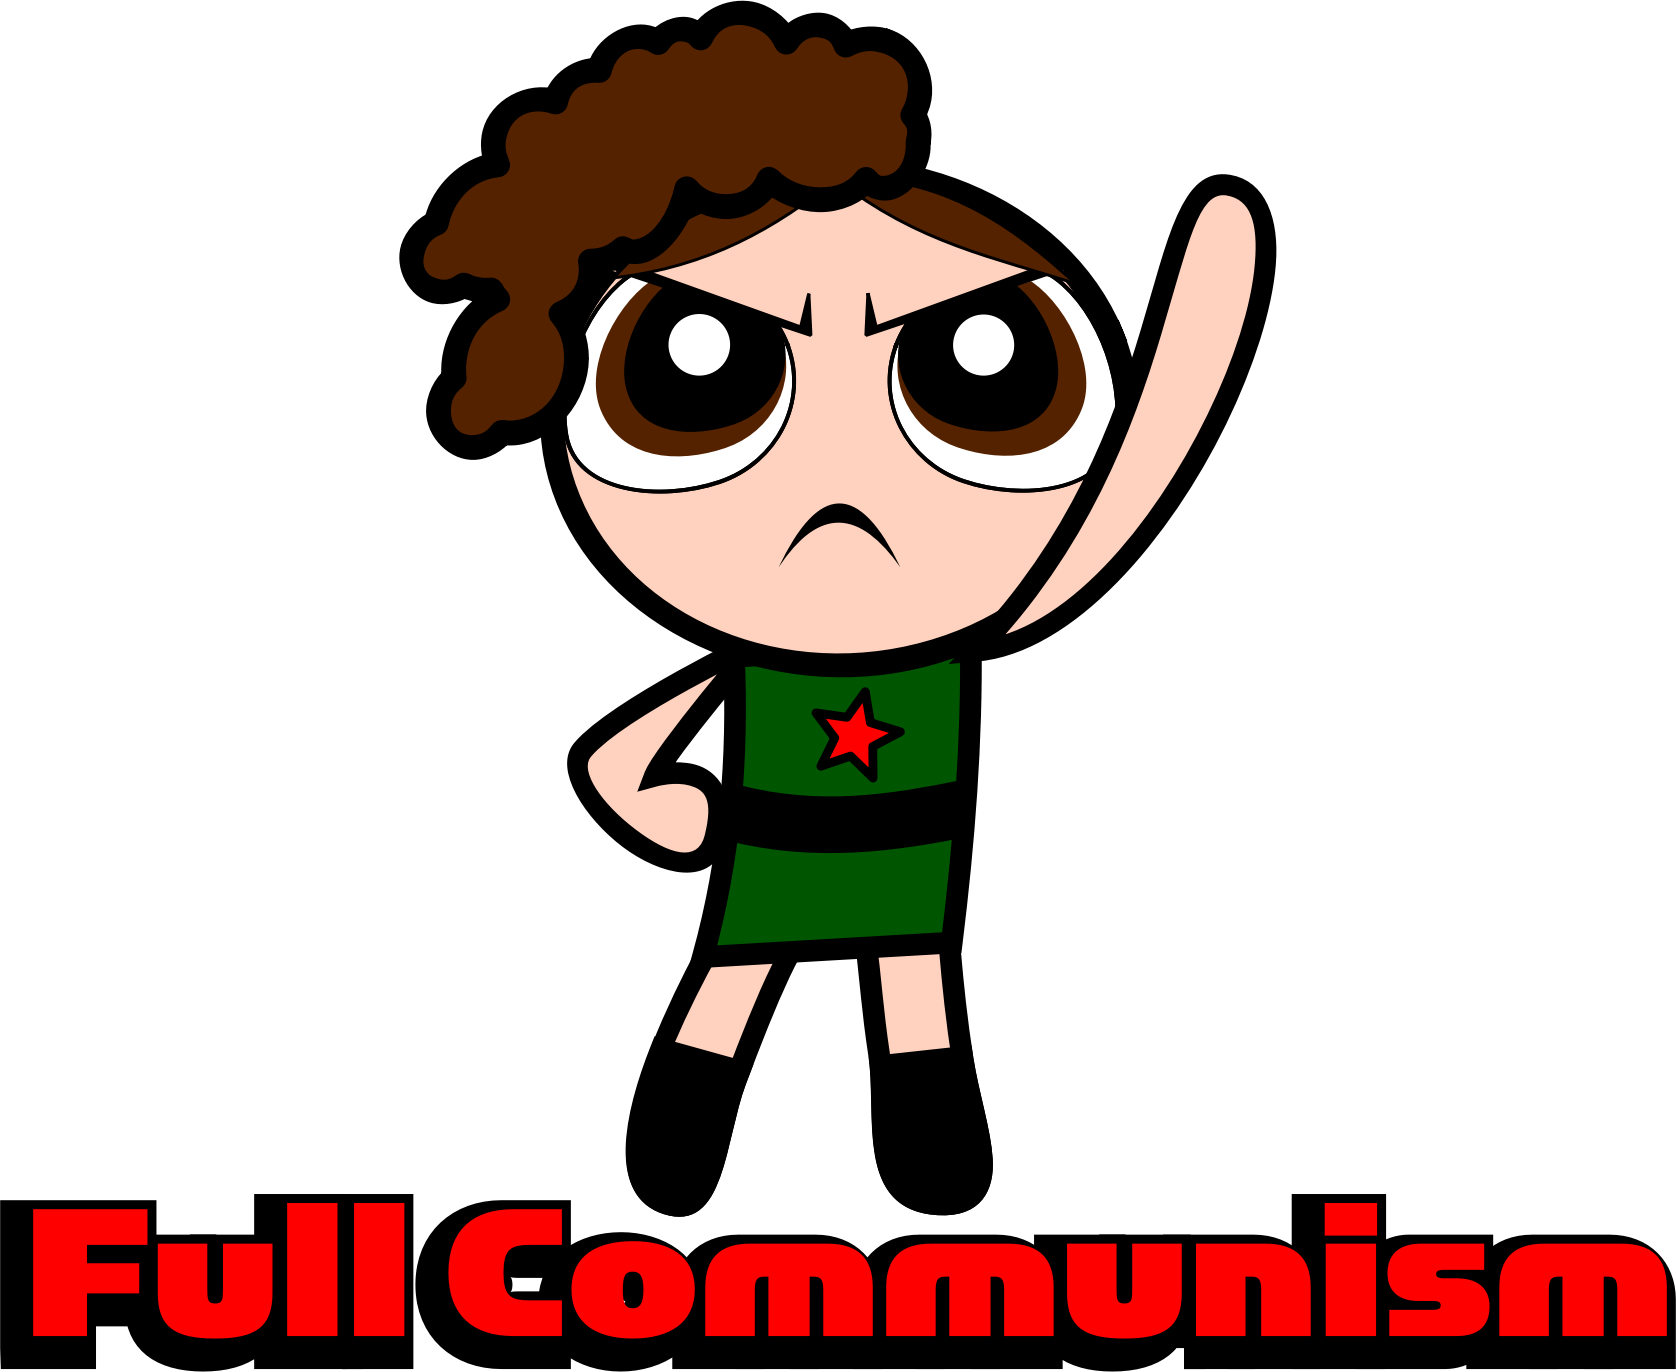 Full Communism girl by argumento